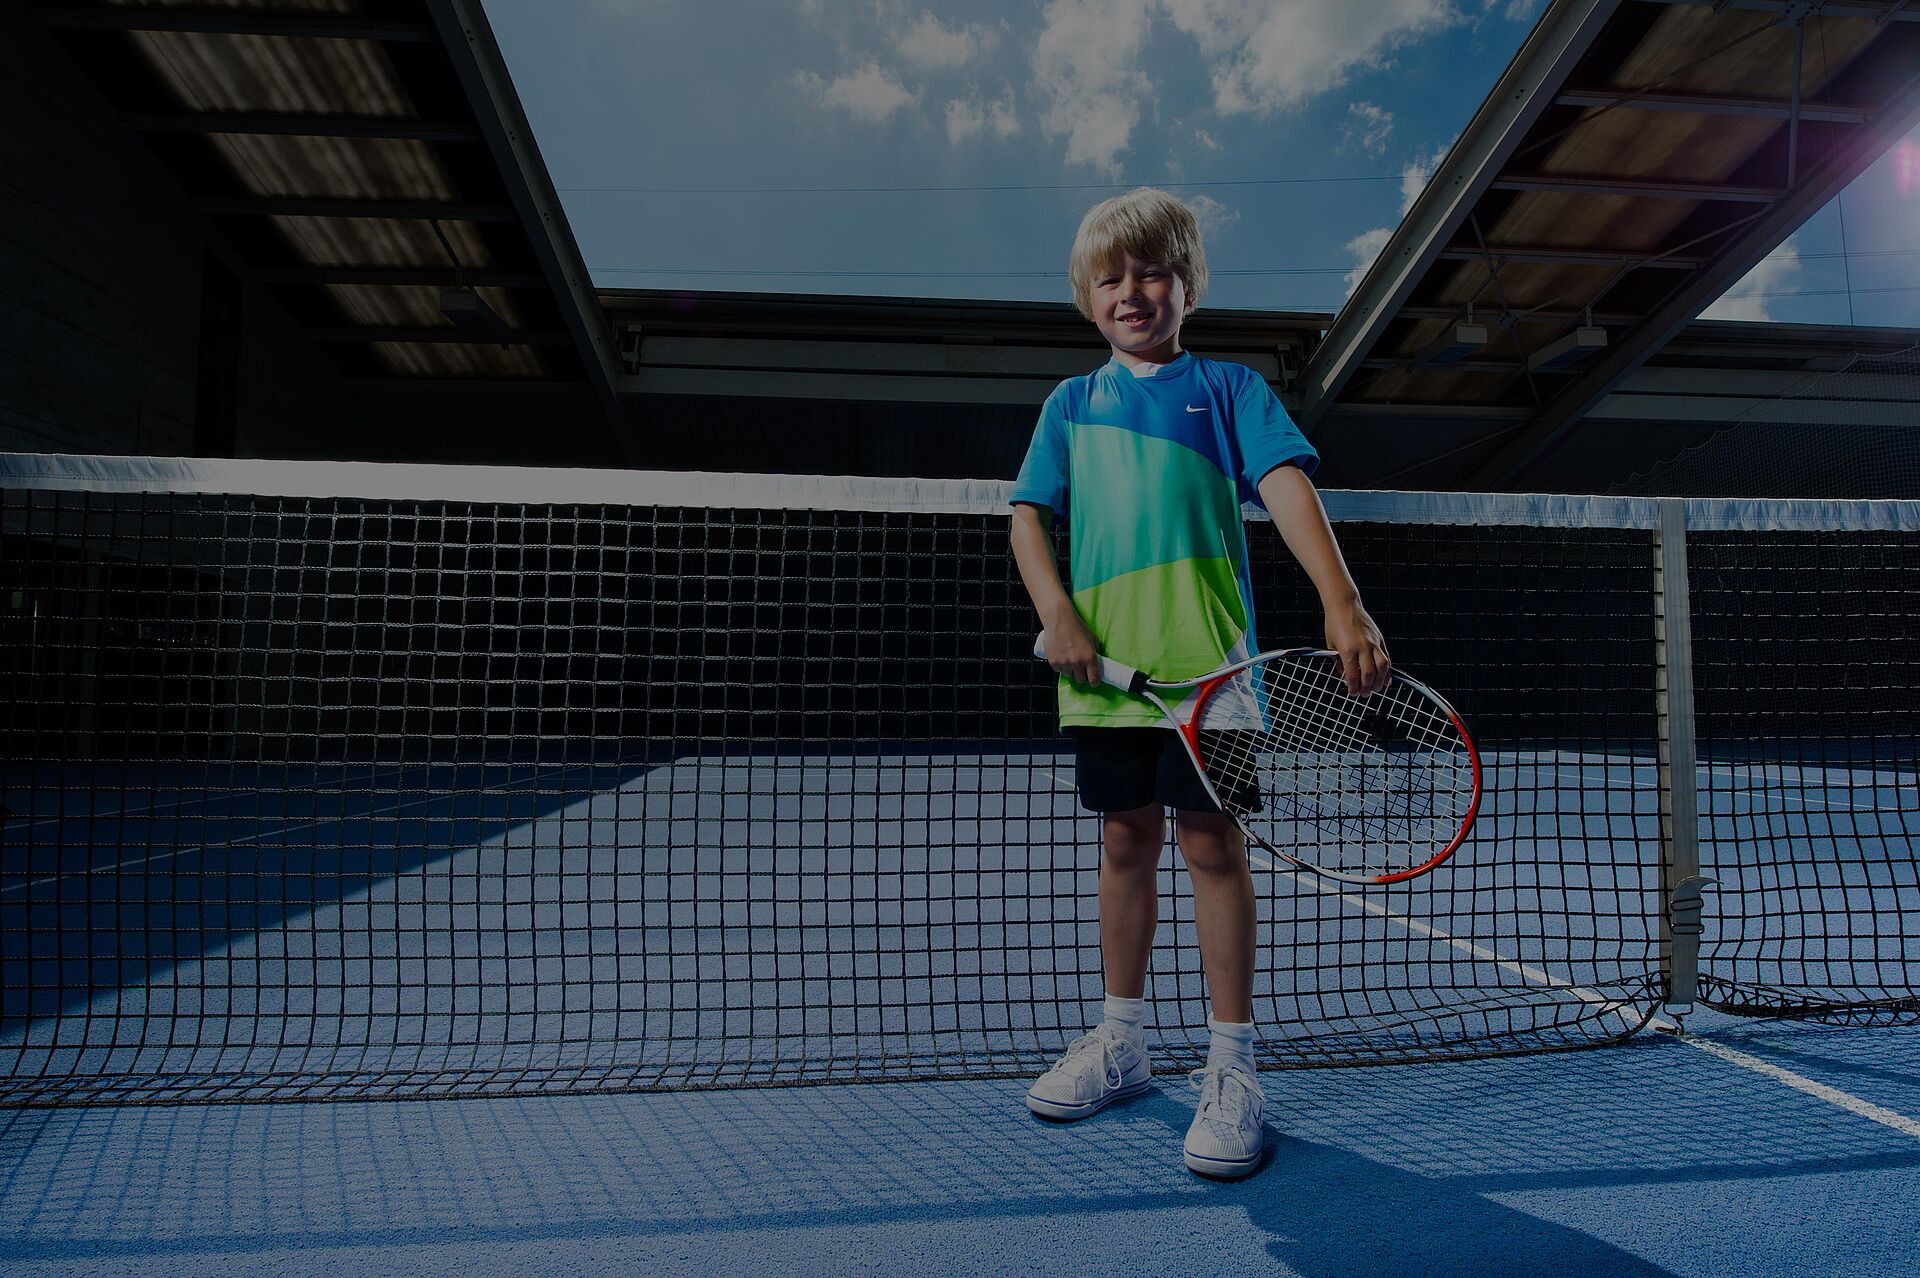 Kidstennis Center Schumacher Dübendorf Zürich